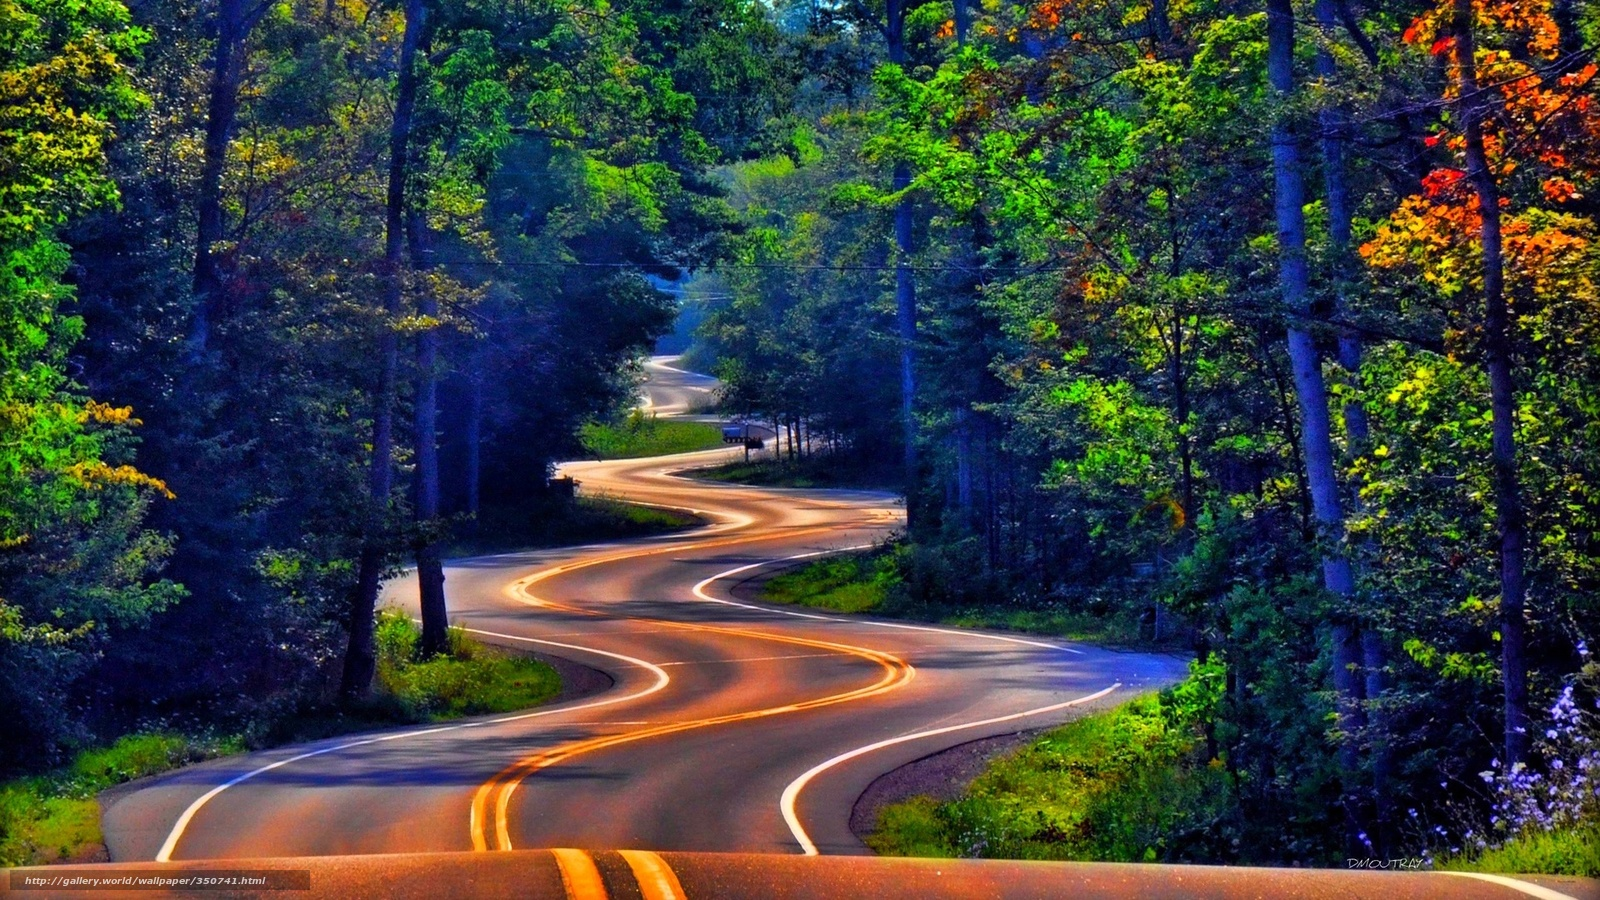 Download Wallpaper Nature Summer Road Serpentine Free Desktop In The Resolution 1920x1080 Picture No350741